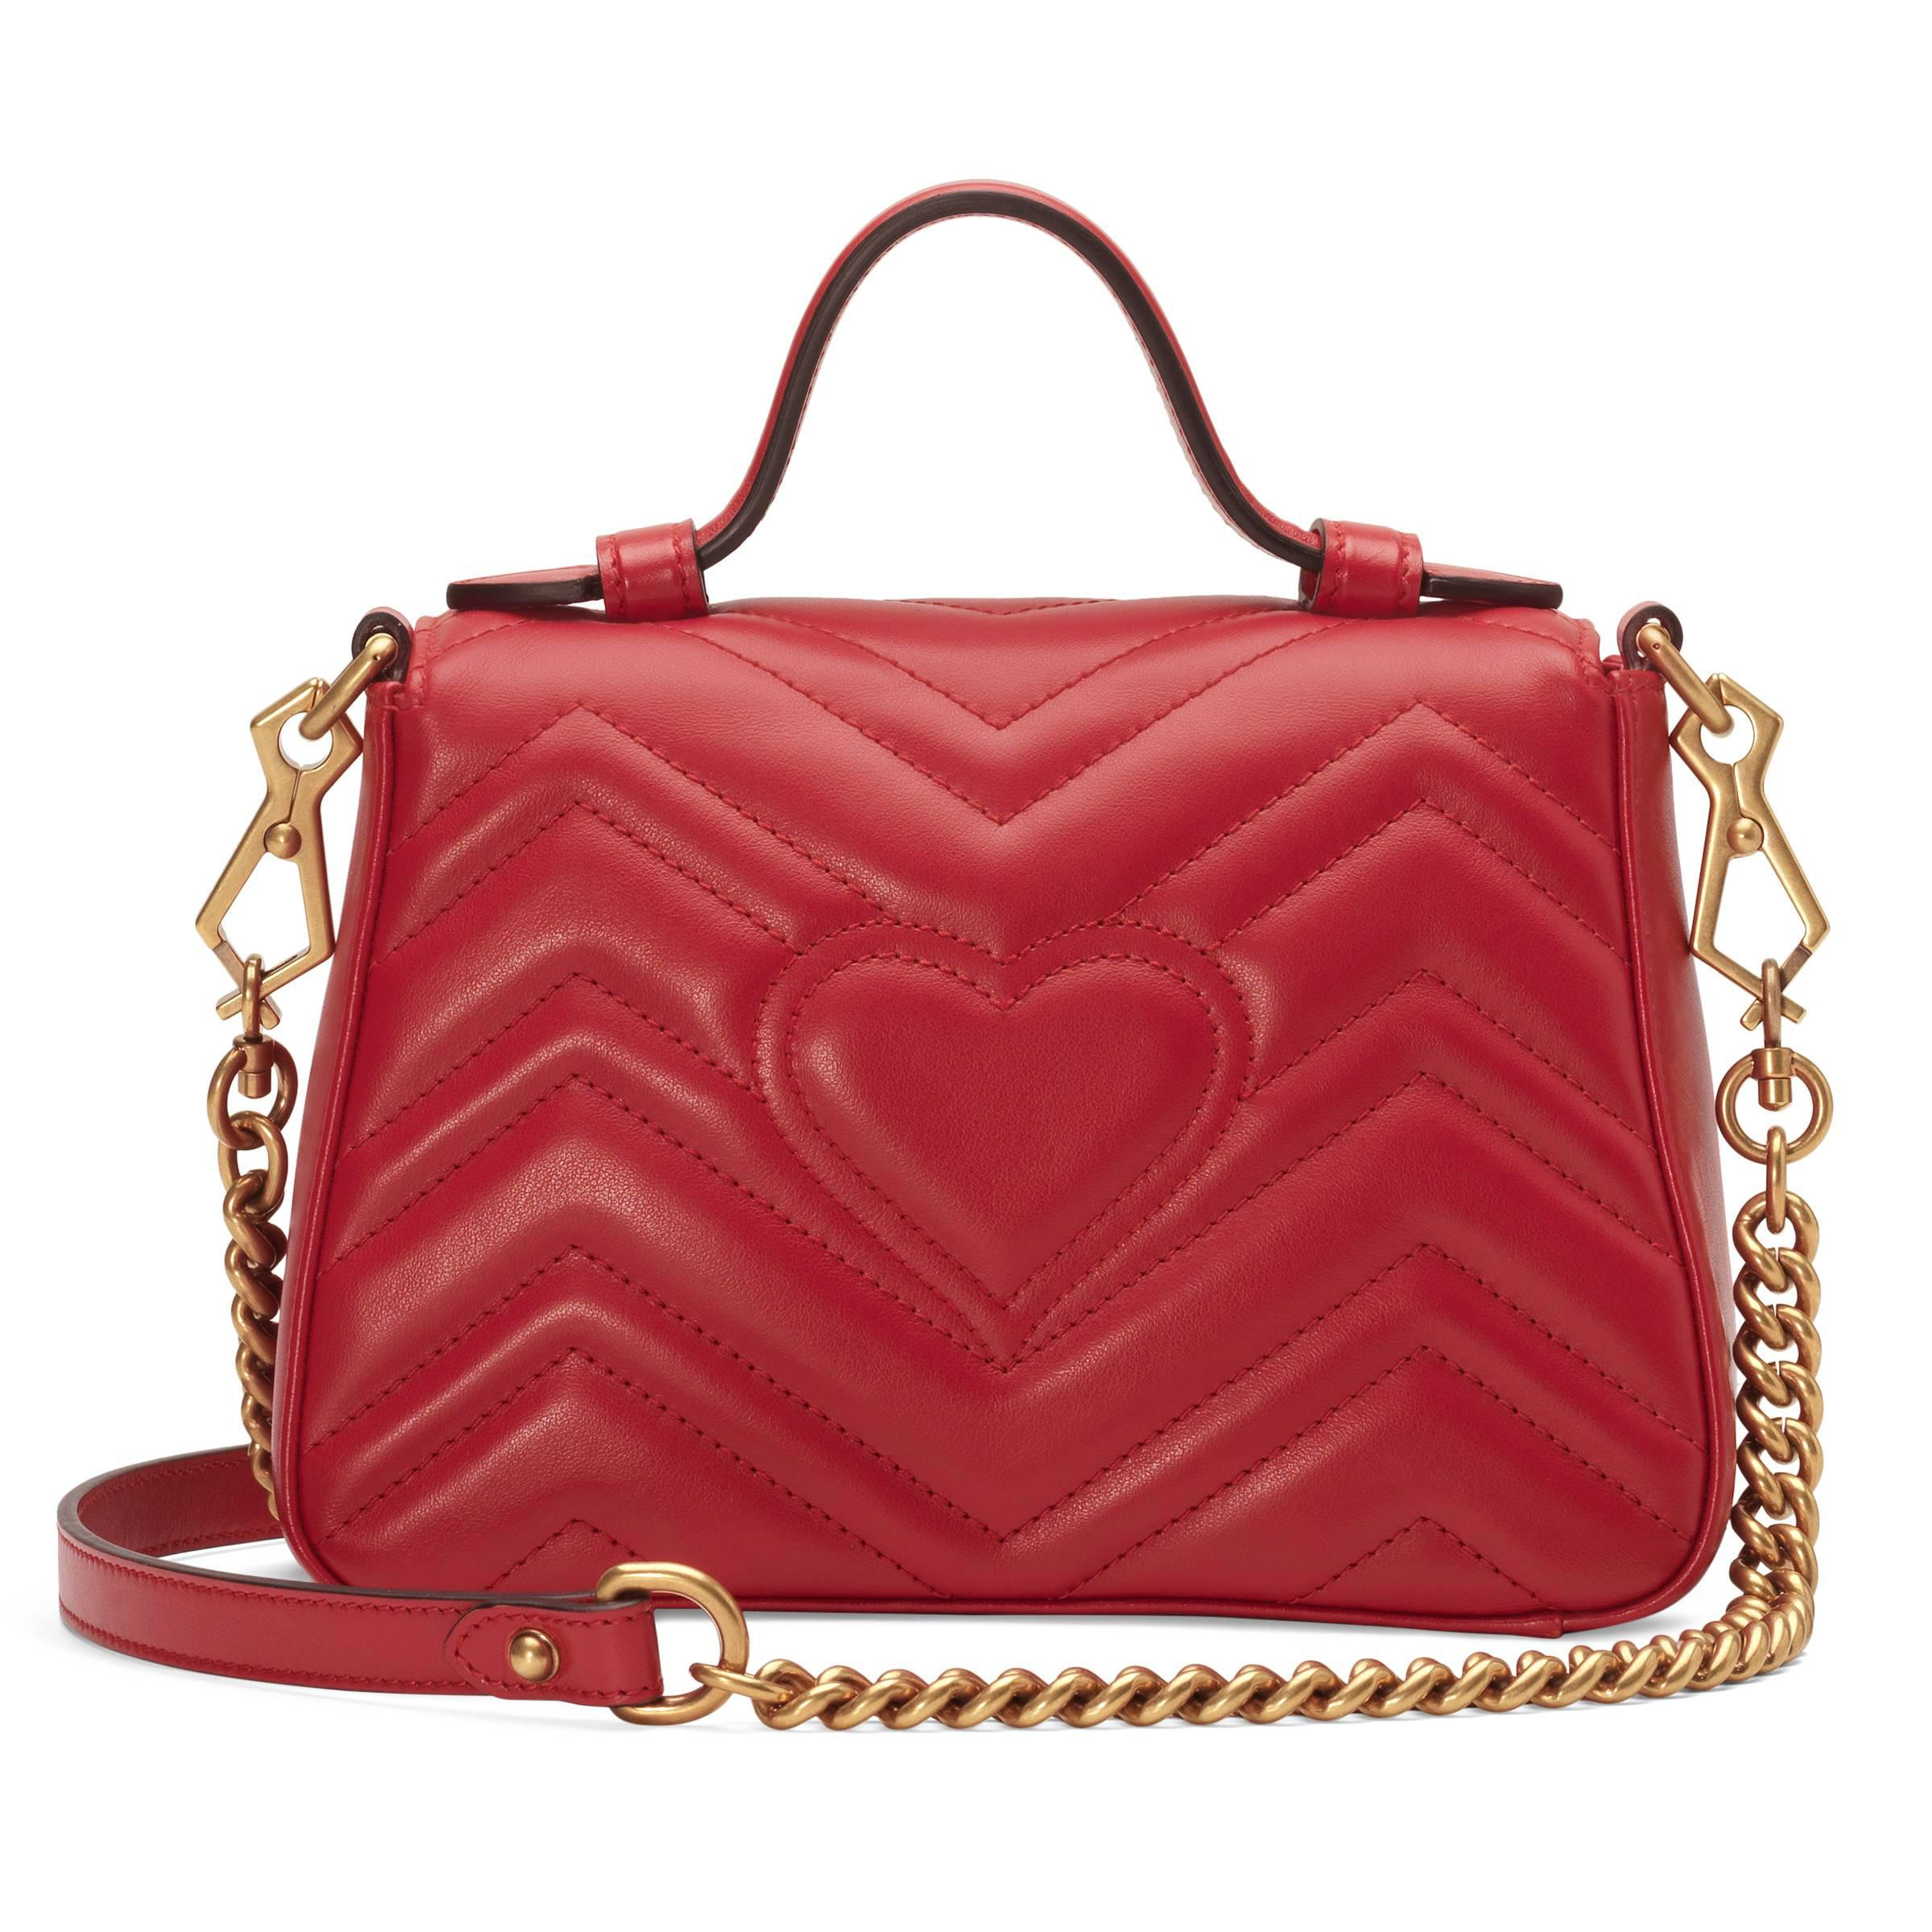 82cbadb6461 Gucci - Red GG Marmont Small Top Handle Bag - Lyst. View fullscreen